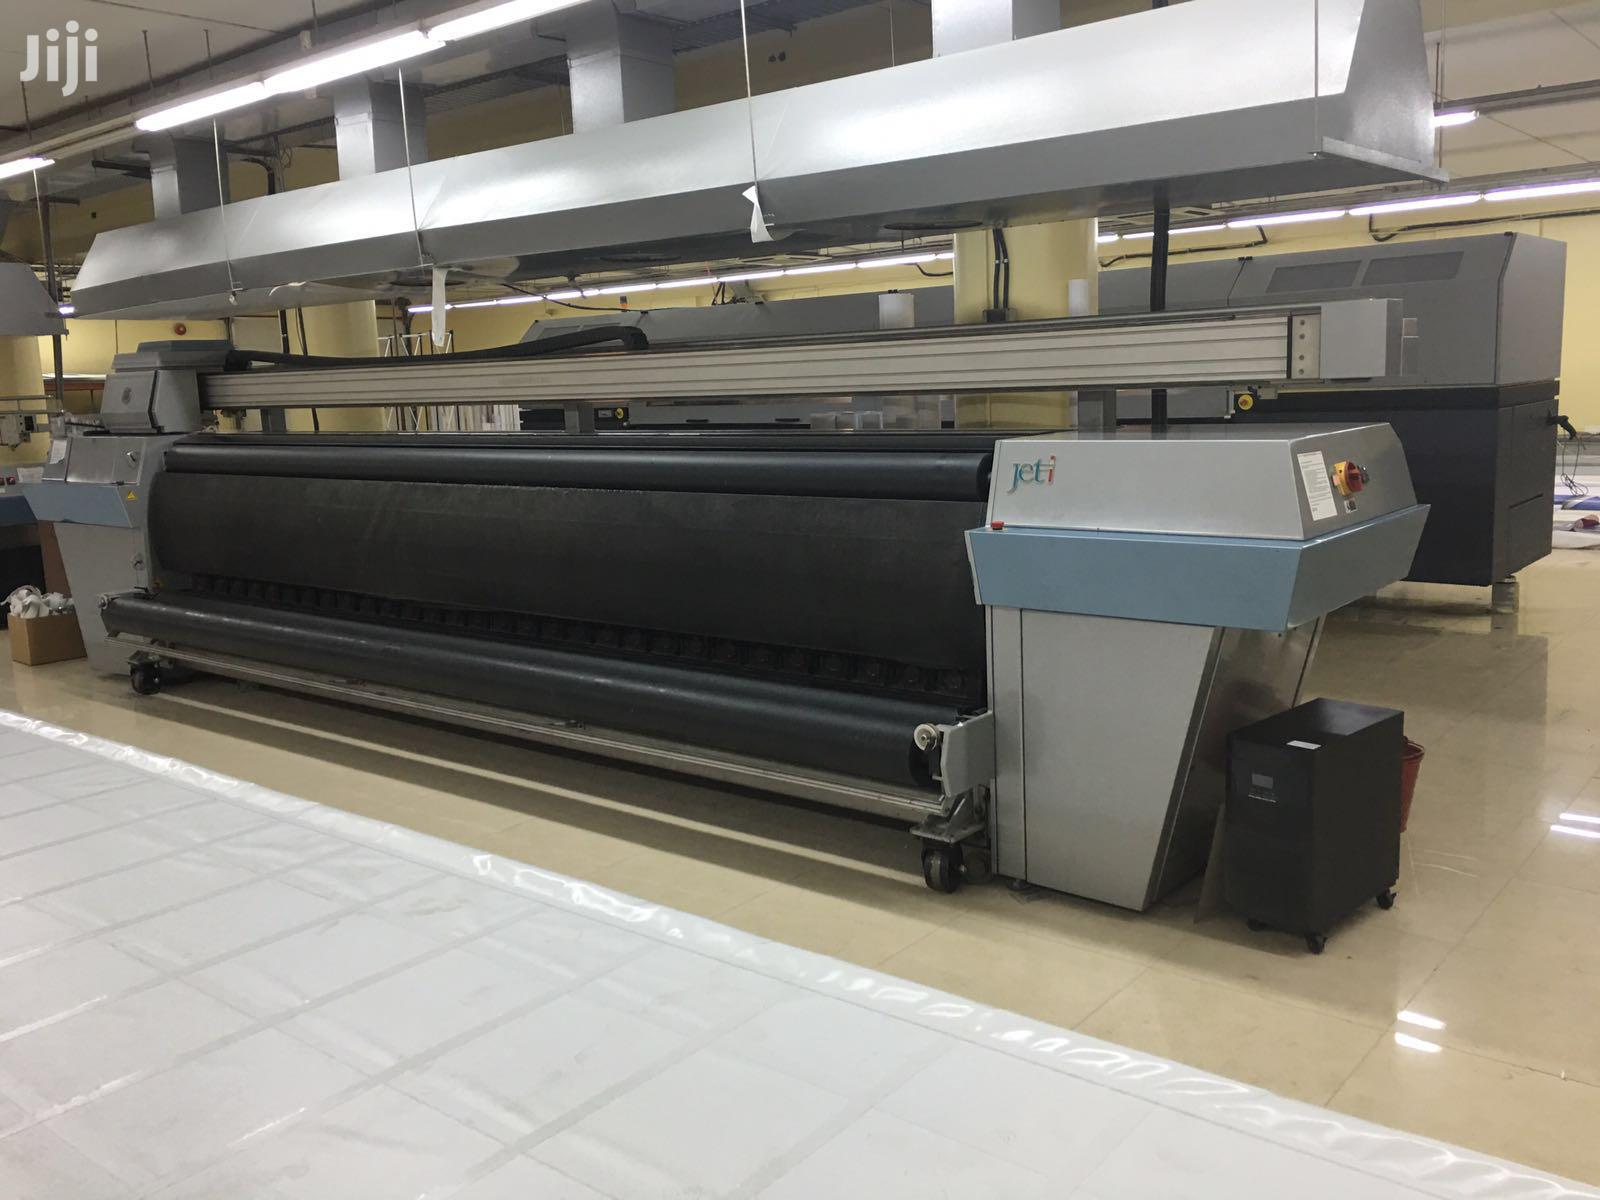 Large Format Solvent Printer Made In Canada | Printing Equipment for sale in Lartebiokorshie, Greater Accra, Ghana